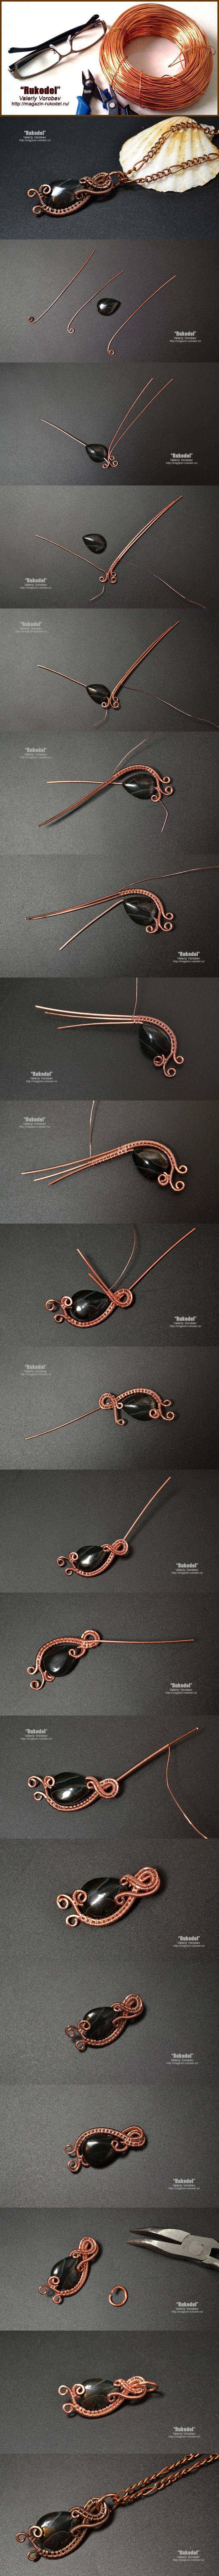 Wire Wrapping voor beginners.